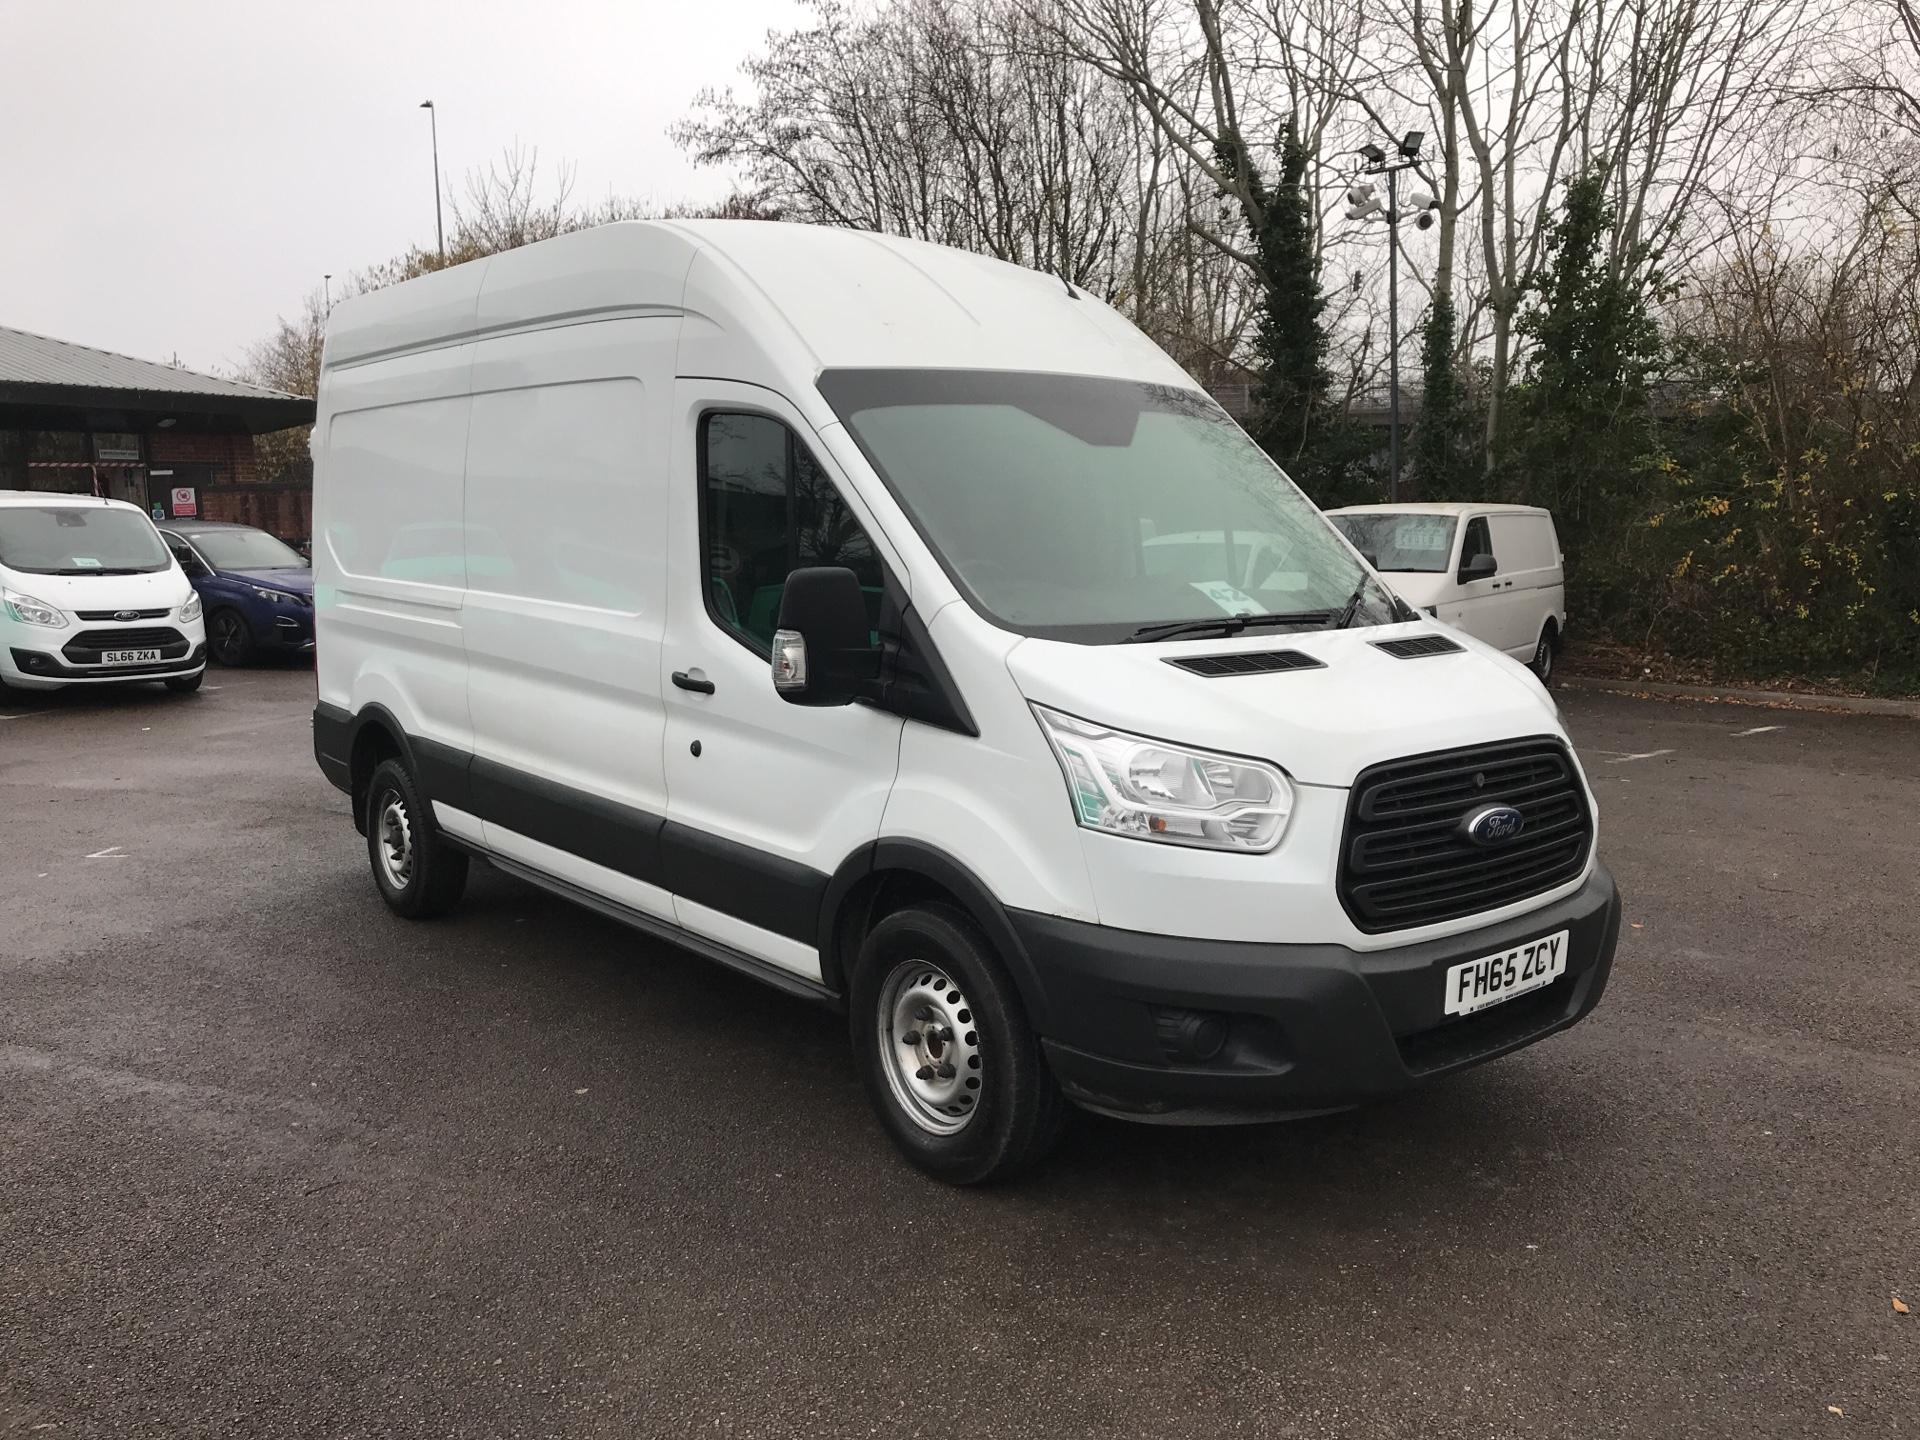 2015 Ford Transit  350 L3 H3 VAN 125PS EURO 5 2.2 Tdci Van  *VALUE RANGE VEHICLE CONDITION REFLECTED IN PRICE* (FH65ZCY)